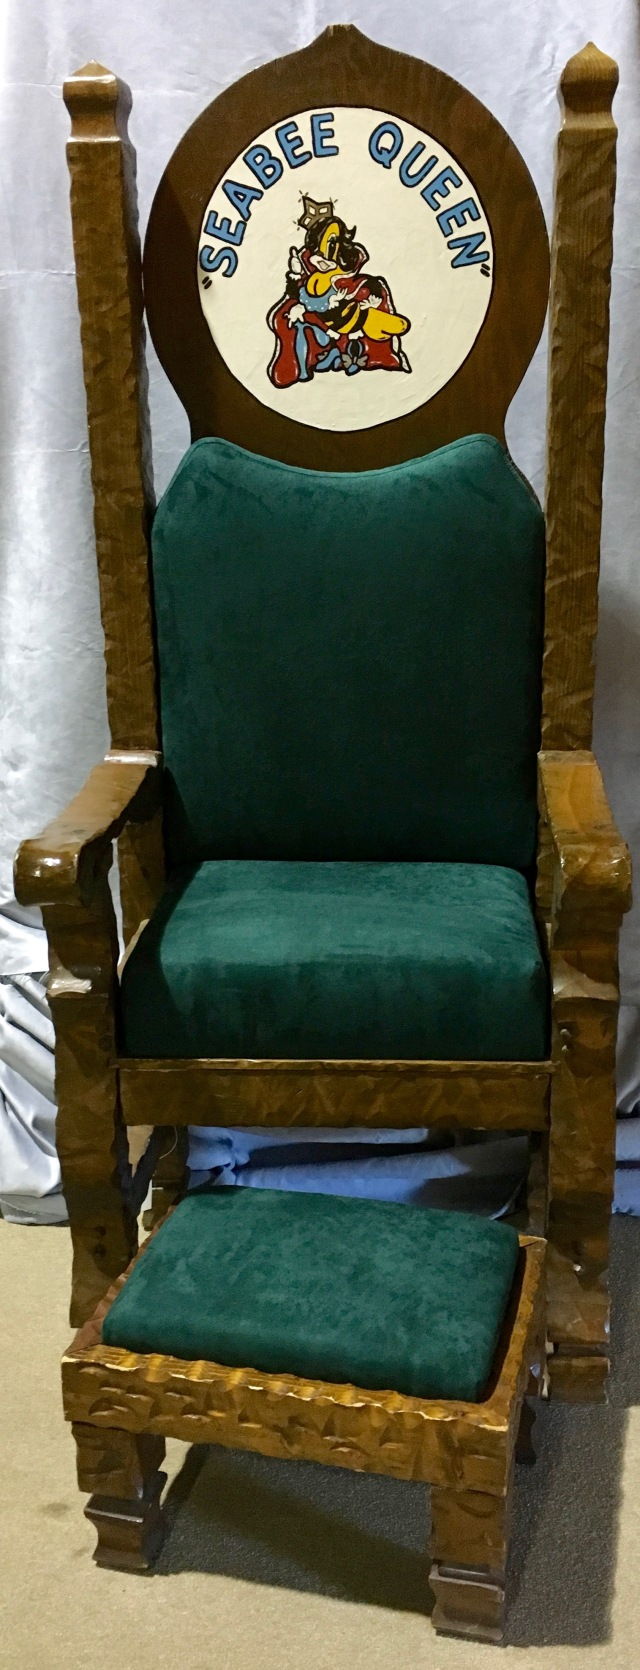 Seabee Queen Throne and stool on display at the U.S. Navy Seabee Museum